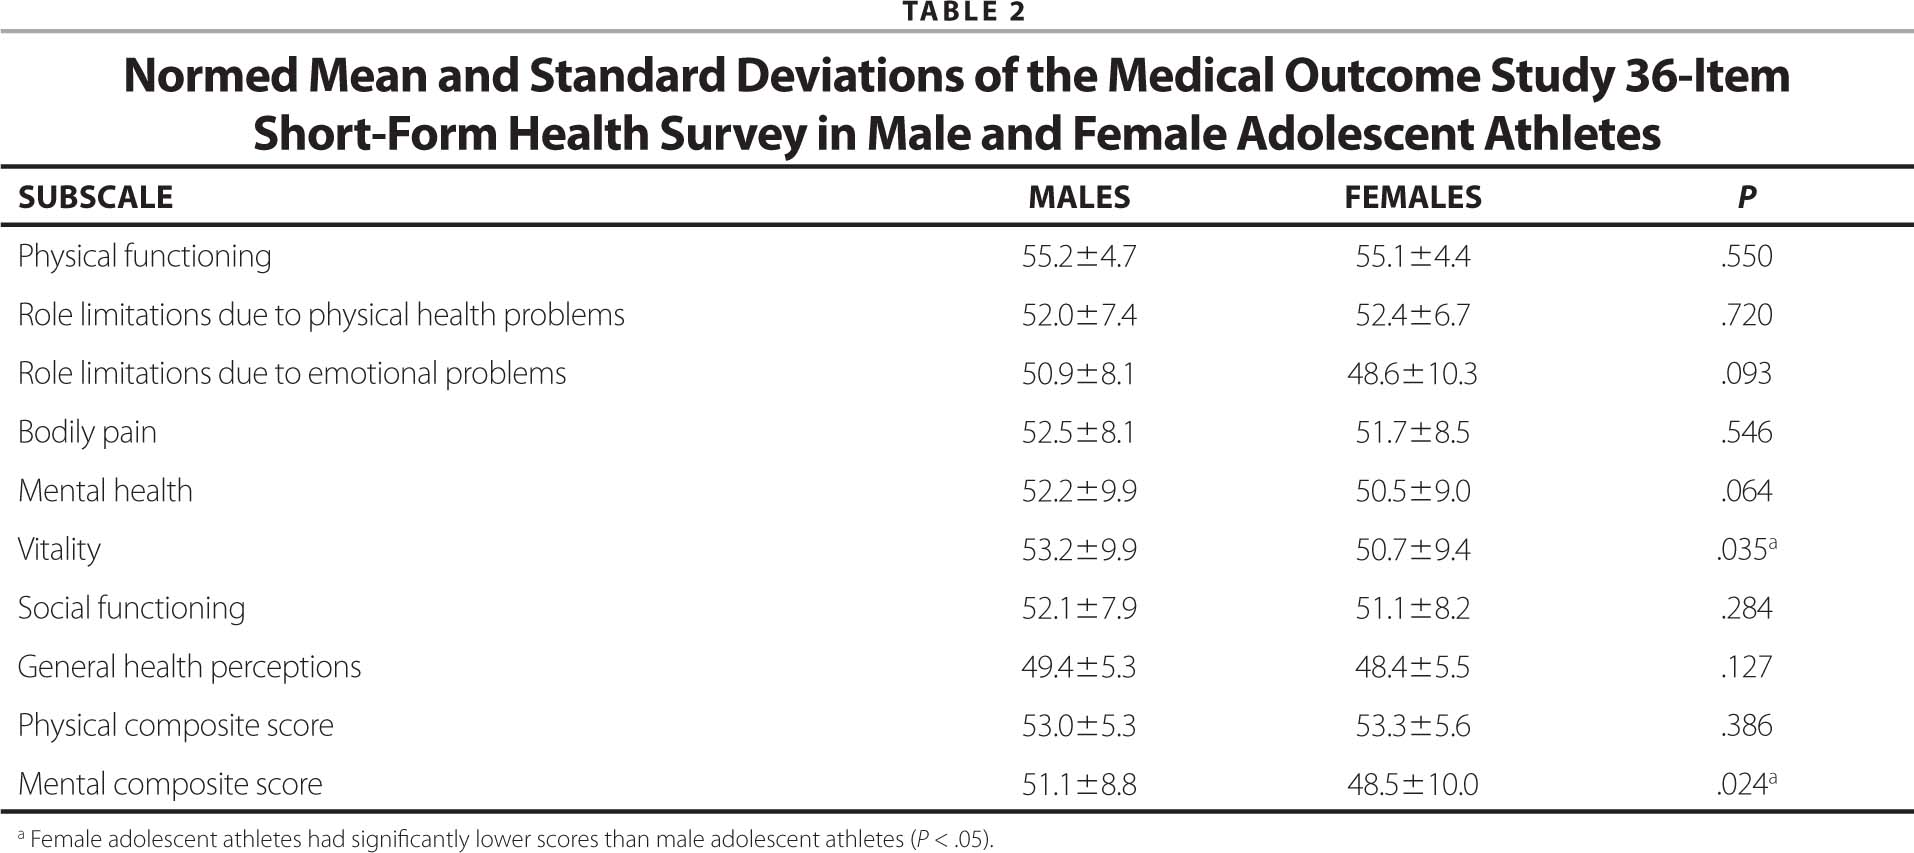 Normed Mean and Standard Deviations of the Medical Outcome Study 36-Item Short-Form Health Survey in Male and Female Adolescent Athletes